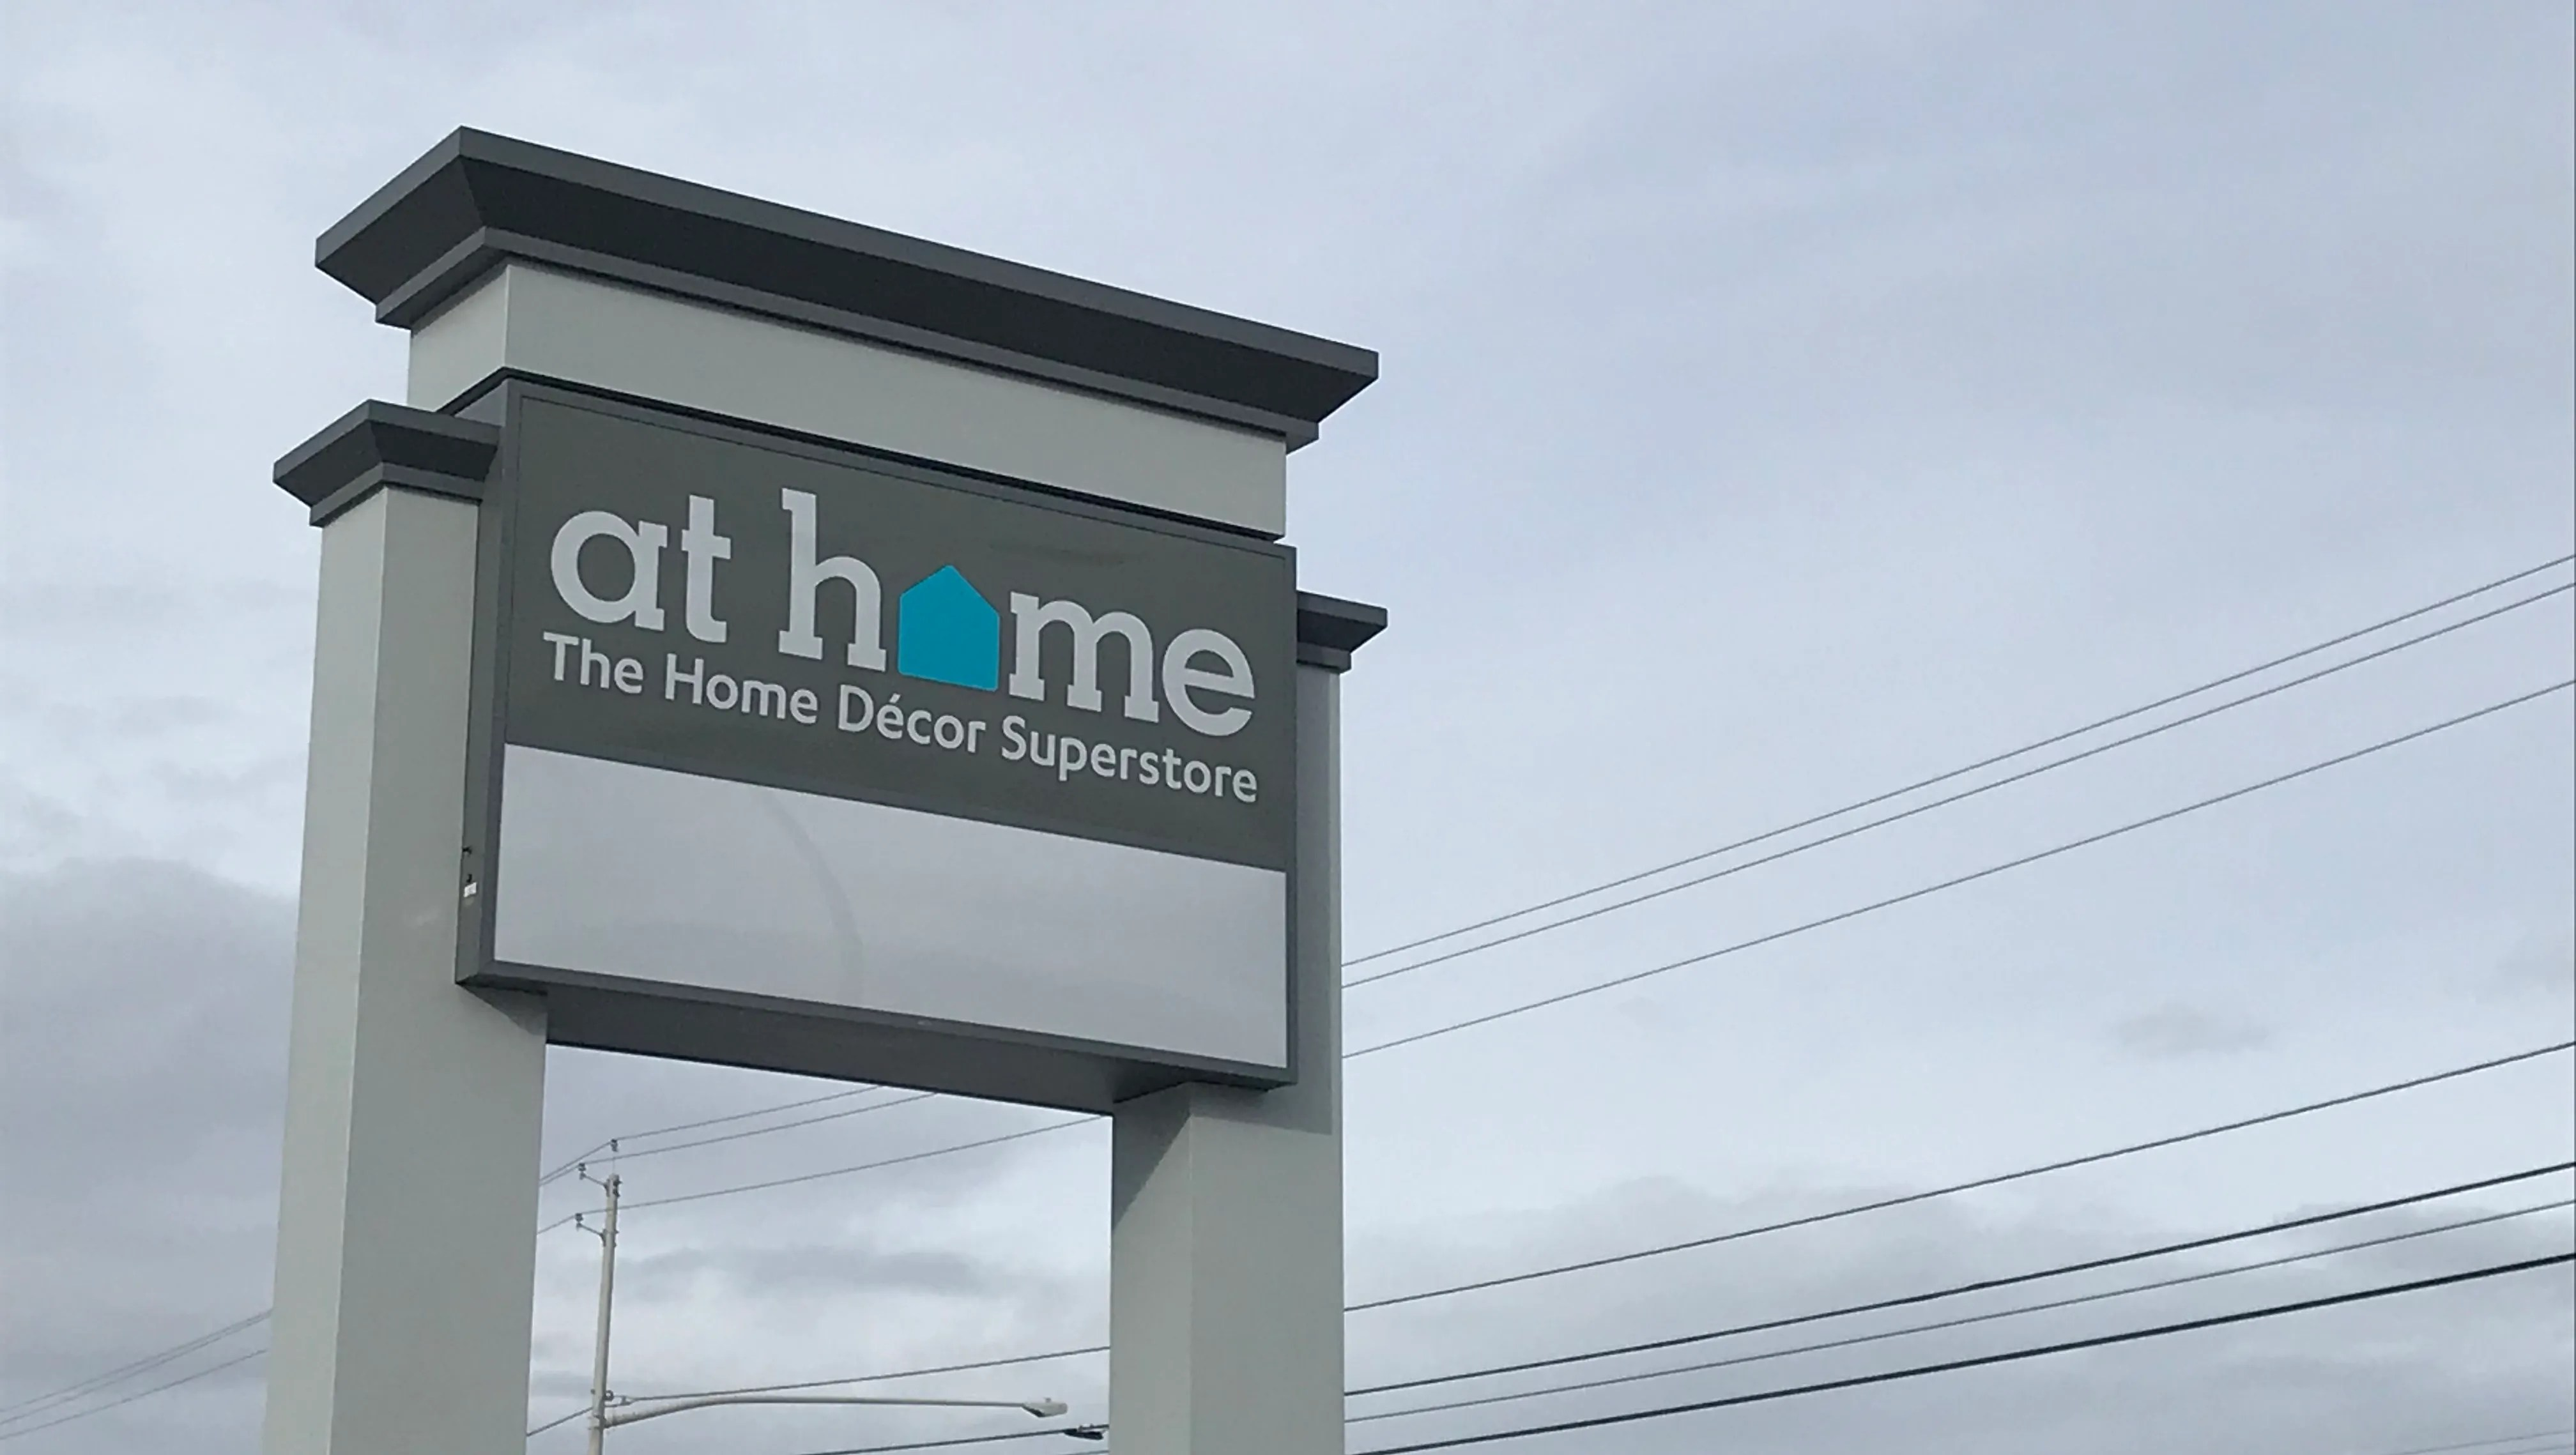 At Home opens in Greece on Wednesday